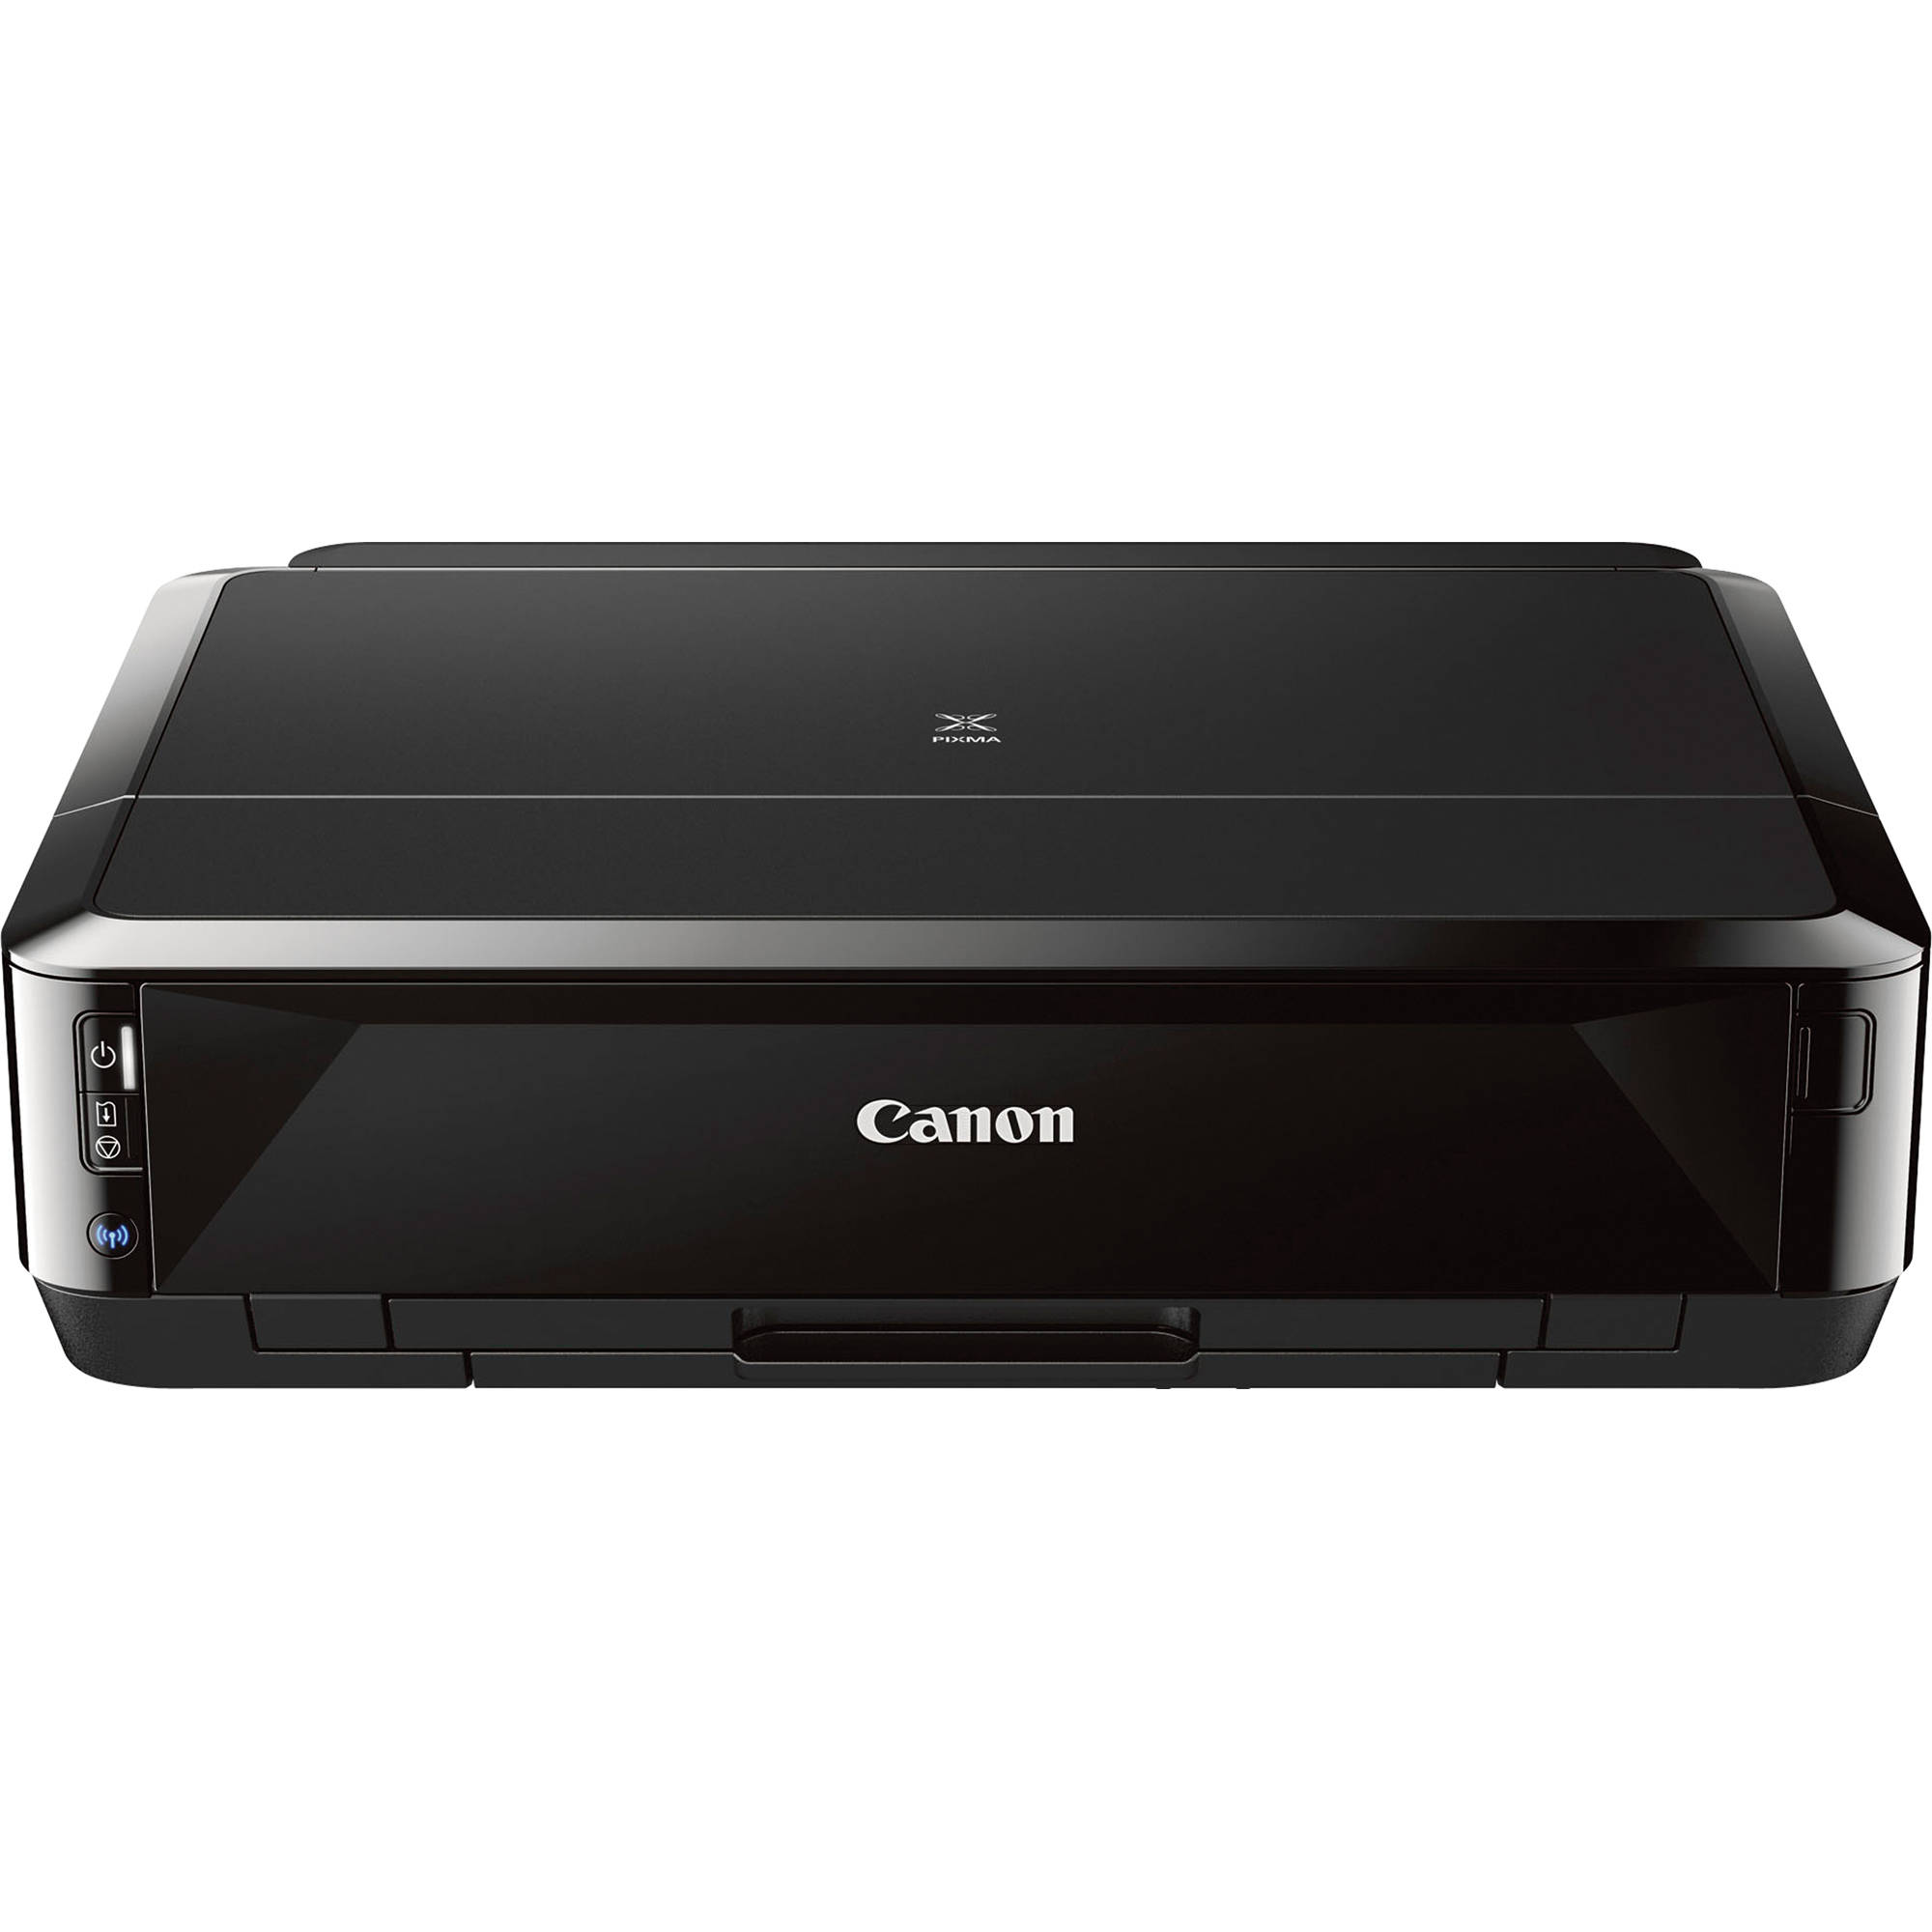 Canon pixma ip7220 wireless color photo printer 6219b002 bh canon pixma ip7220 wireless color photo printer reheart Image collections